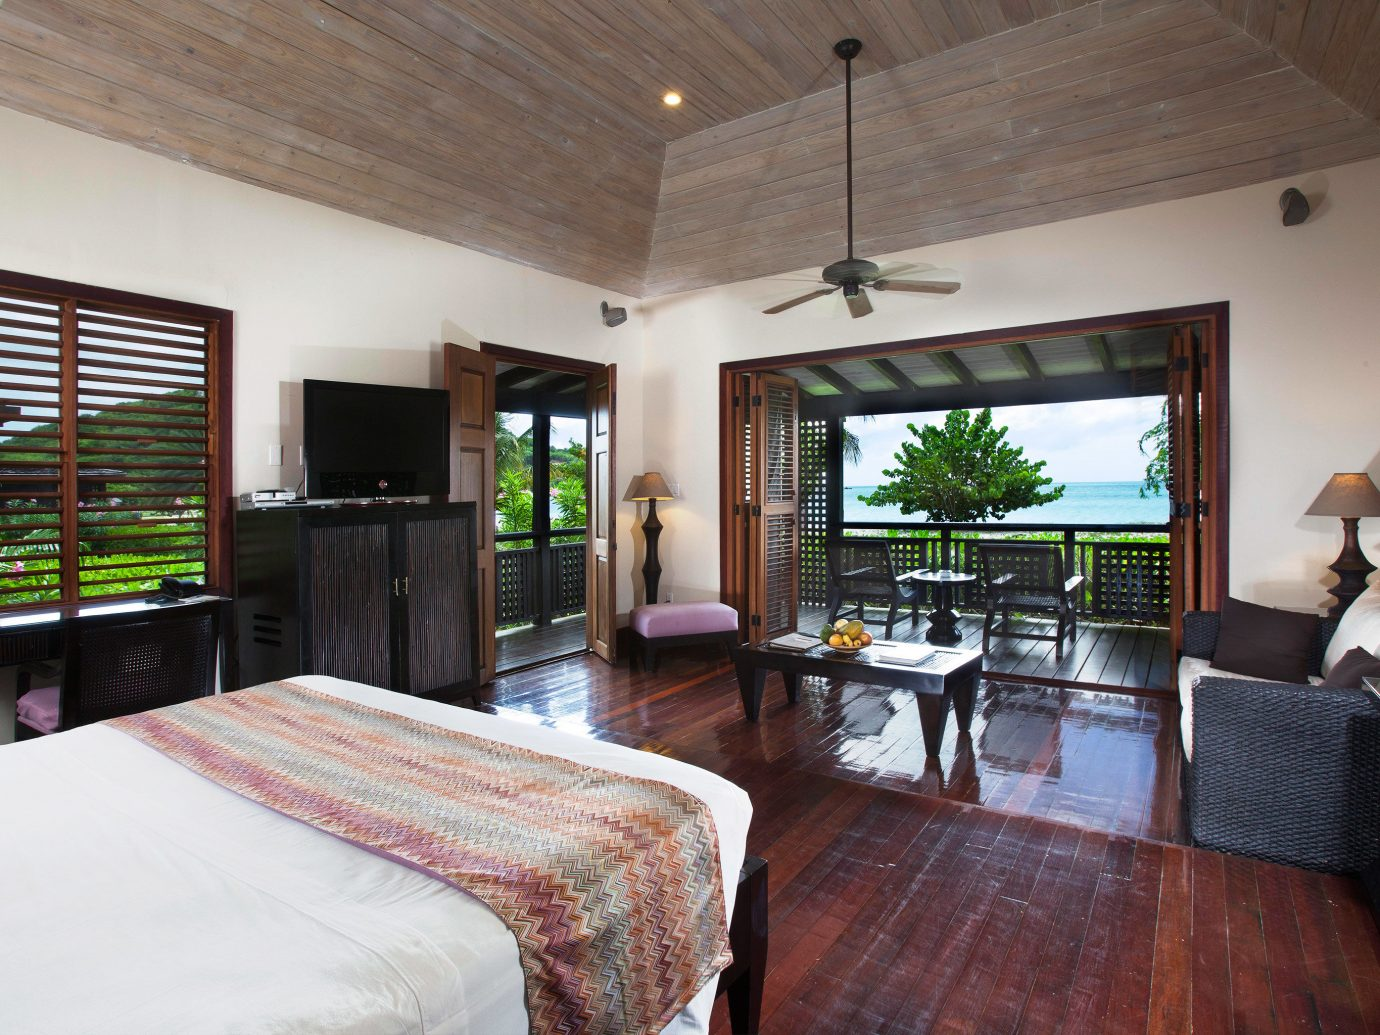 Adult-only All-inclusive Beachfront Bedroom Eco Hotels Living Luxury Romance Romantic indoor room wall ceiling floor window property bed estate house furniture real estate home Resort Villa cottage living room interior design farmhouse decorated area wood